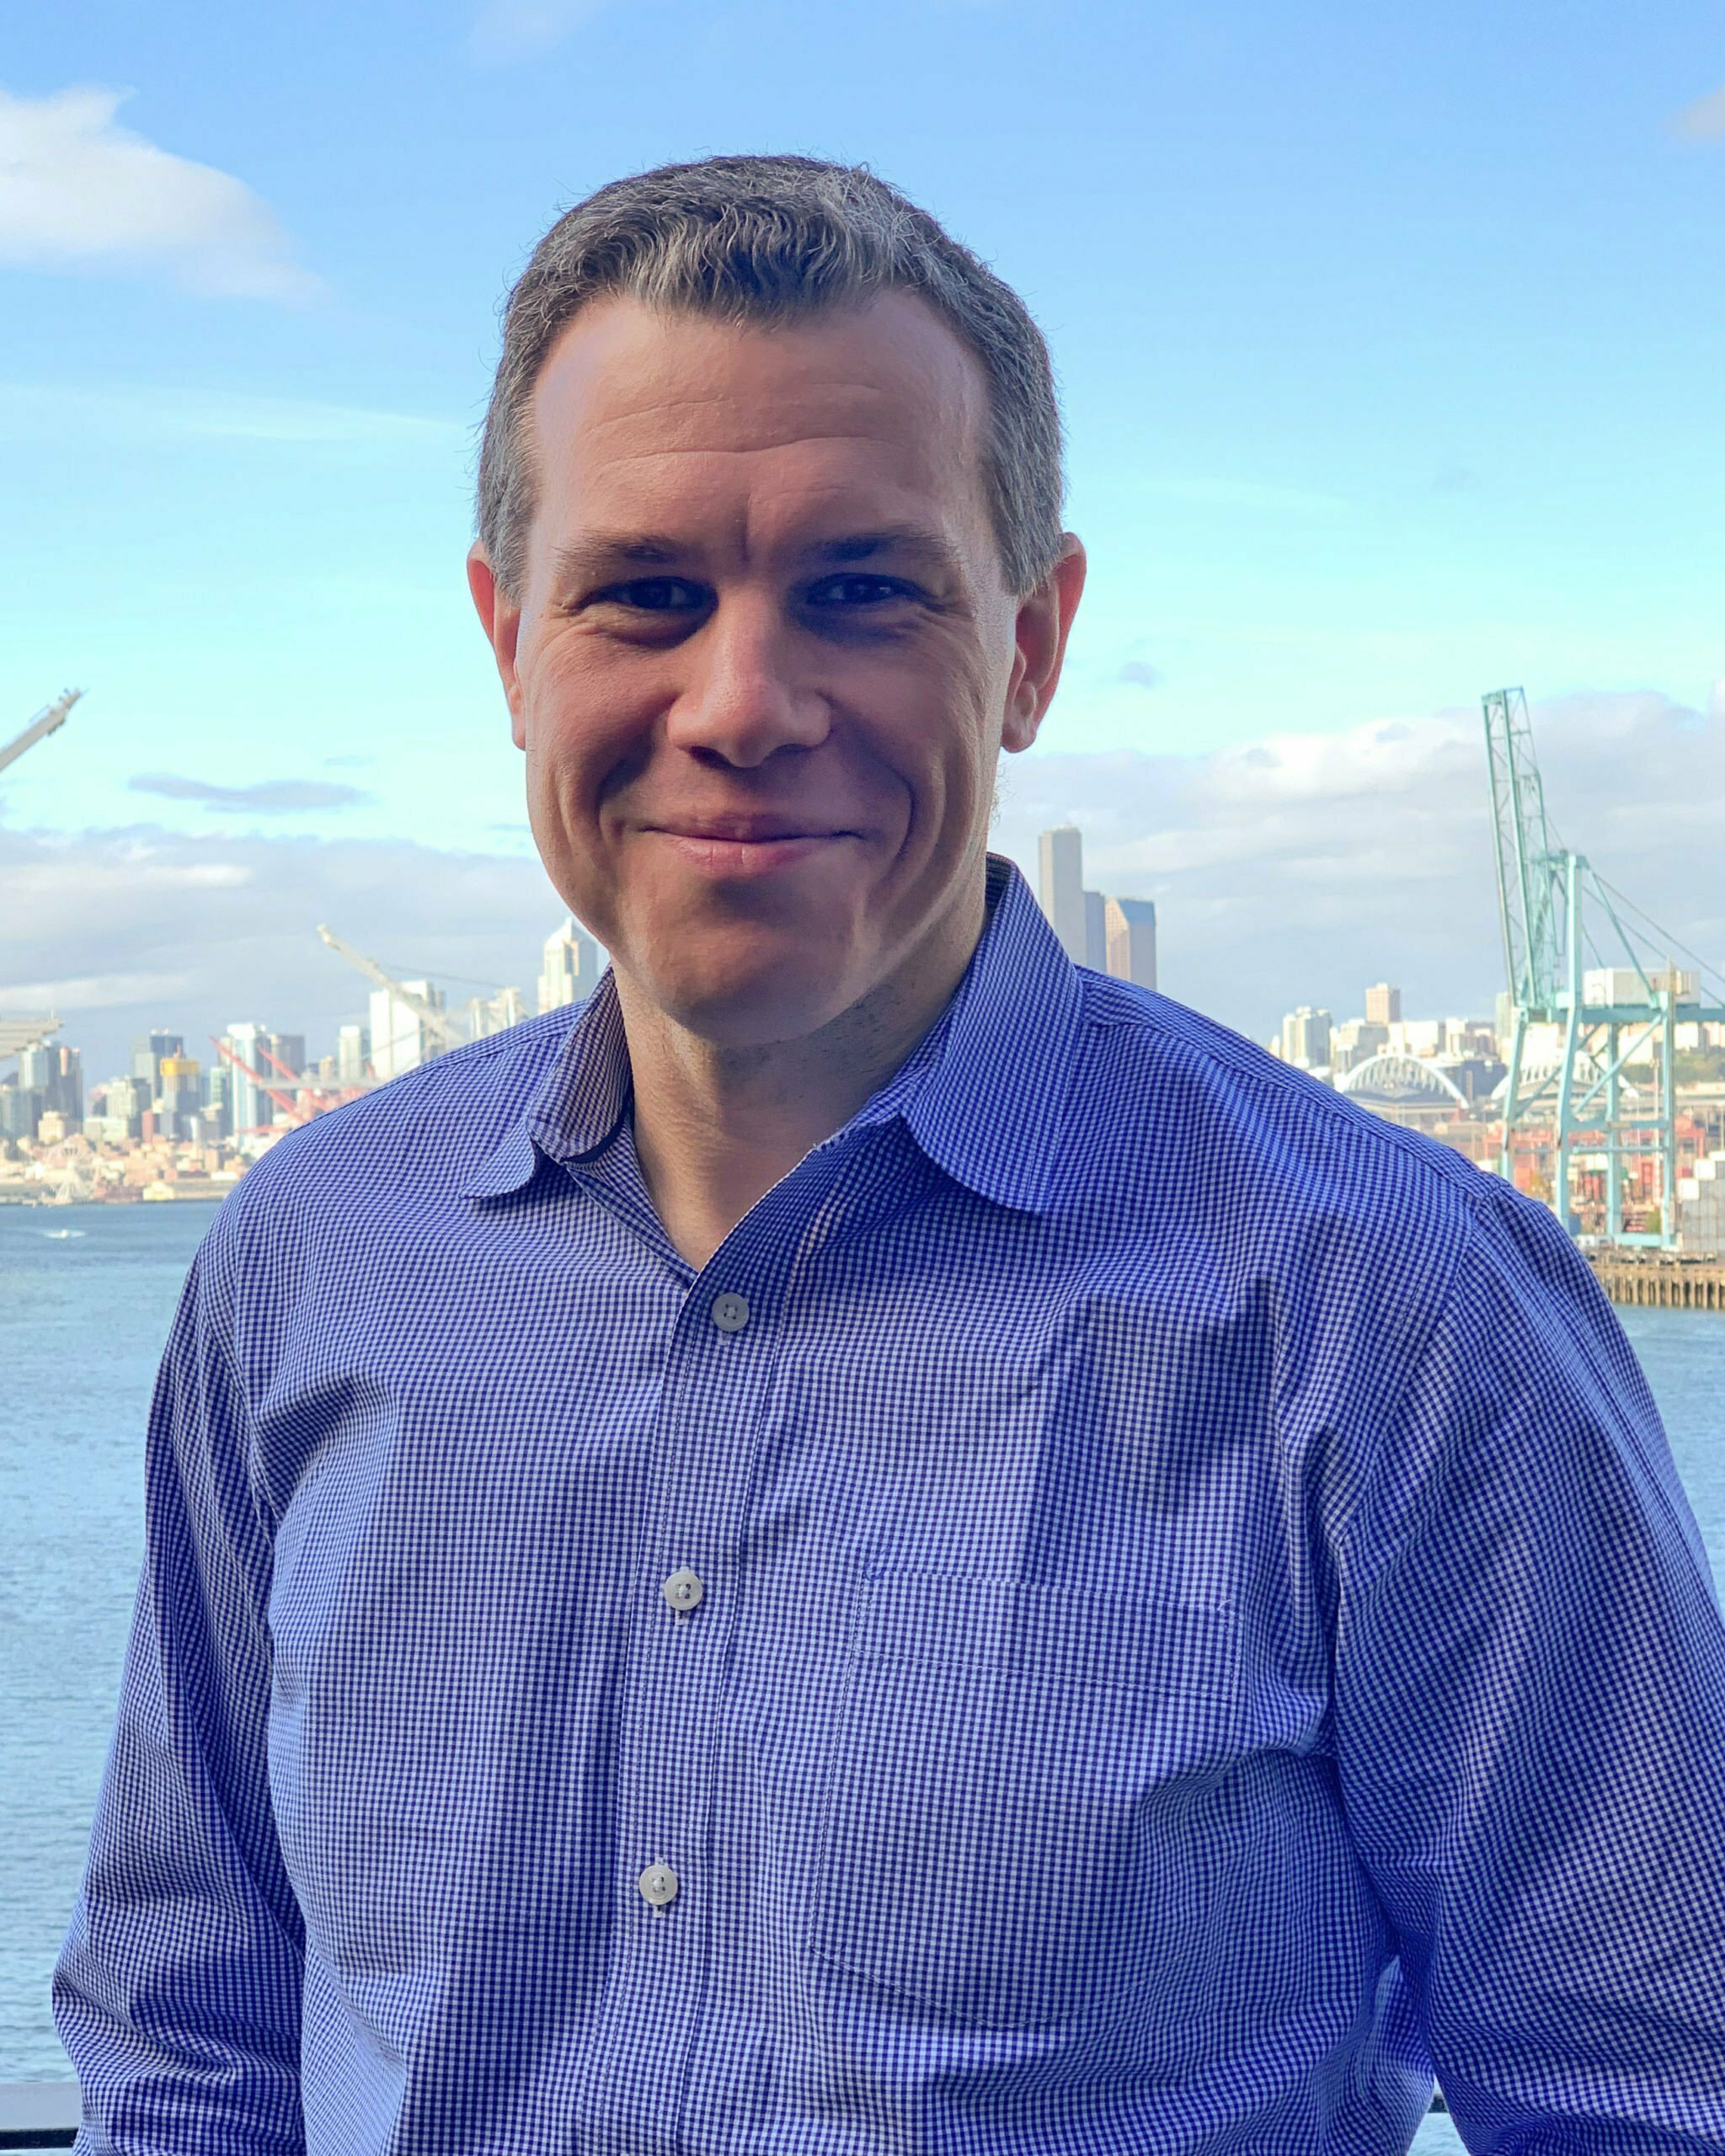 Matt Godden is the President and CEO of Centerline Logistics, a leading provider of marine transportation services in the United States, with operations along the West Coast, New York Harbor and the Gulf Coast.